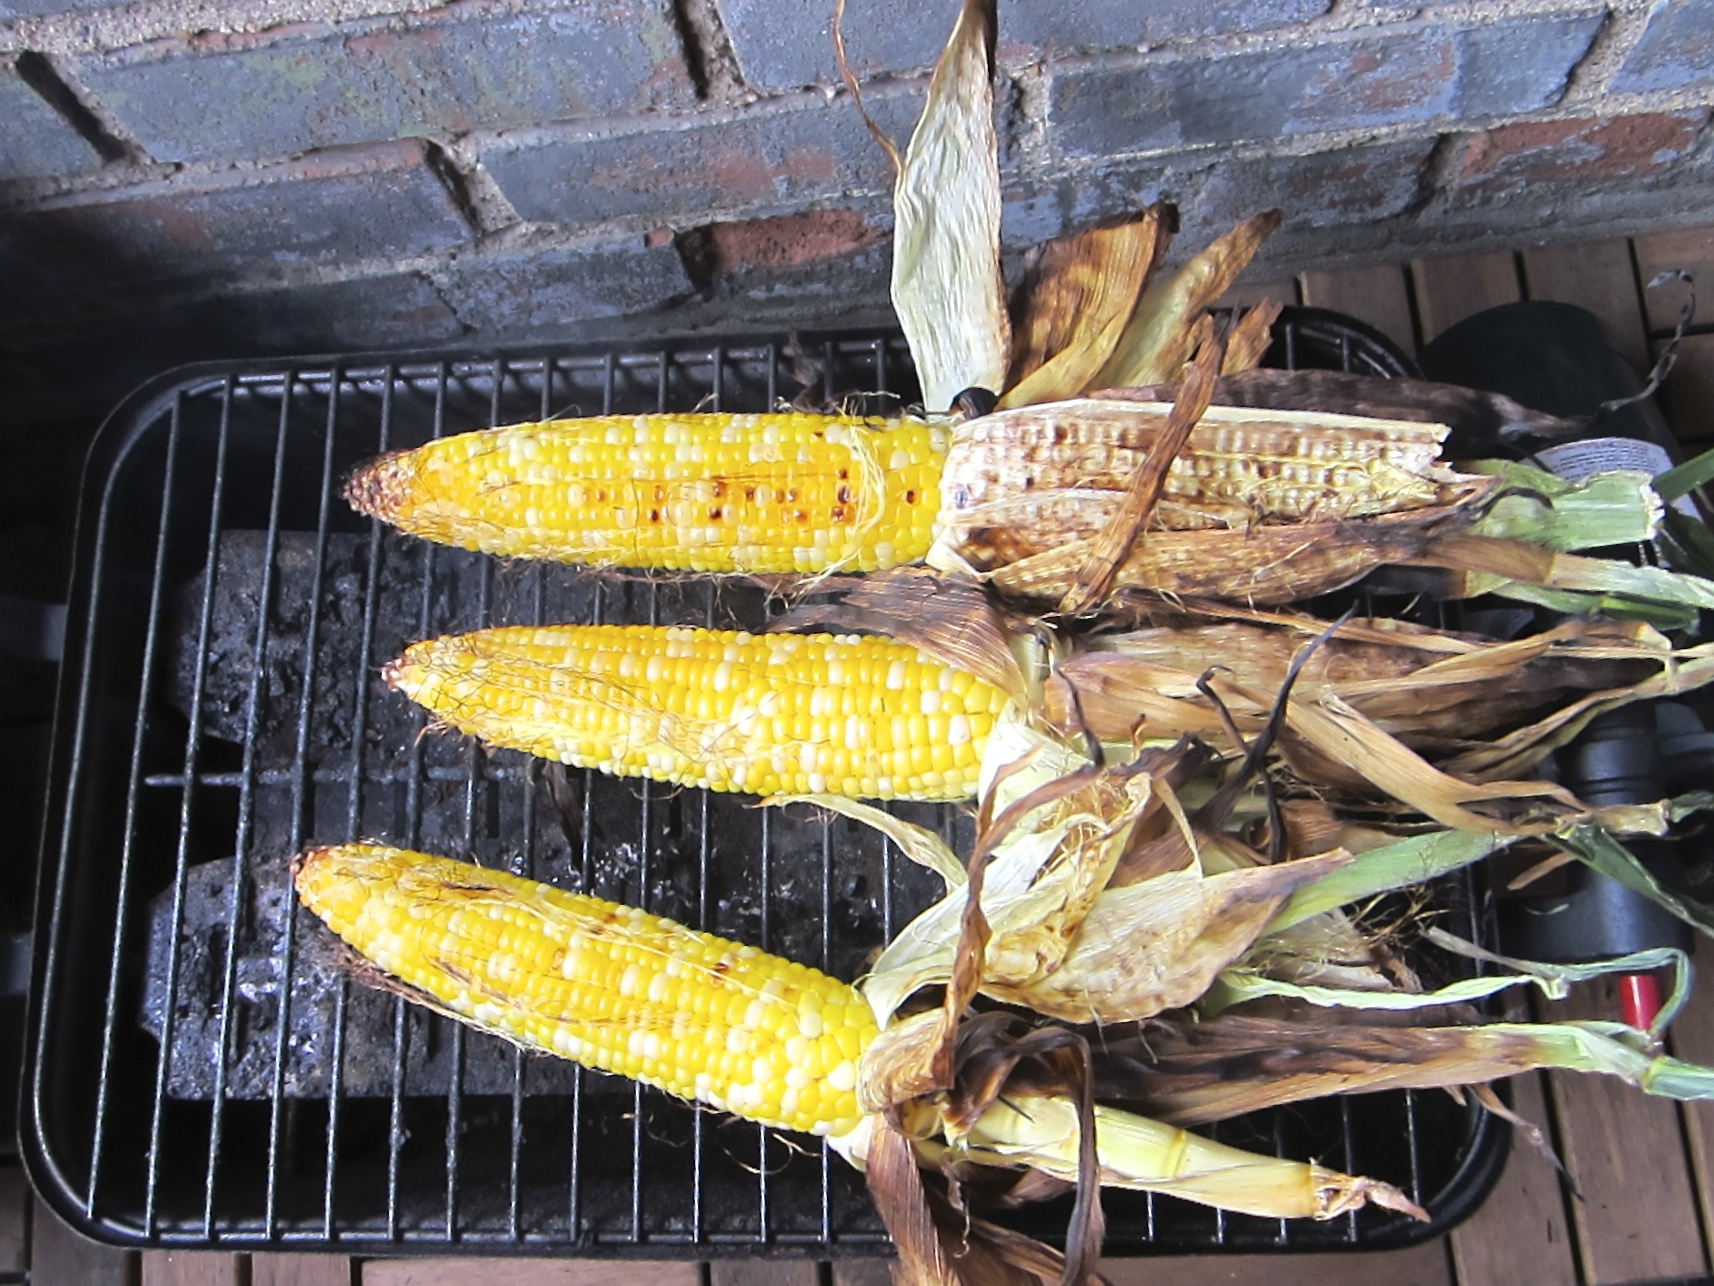 Barbequed corn